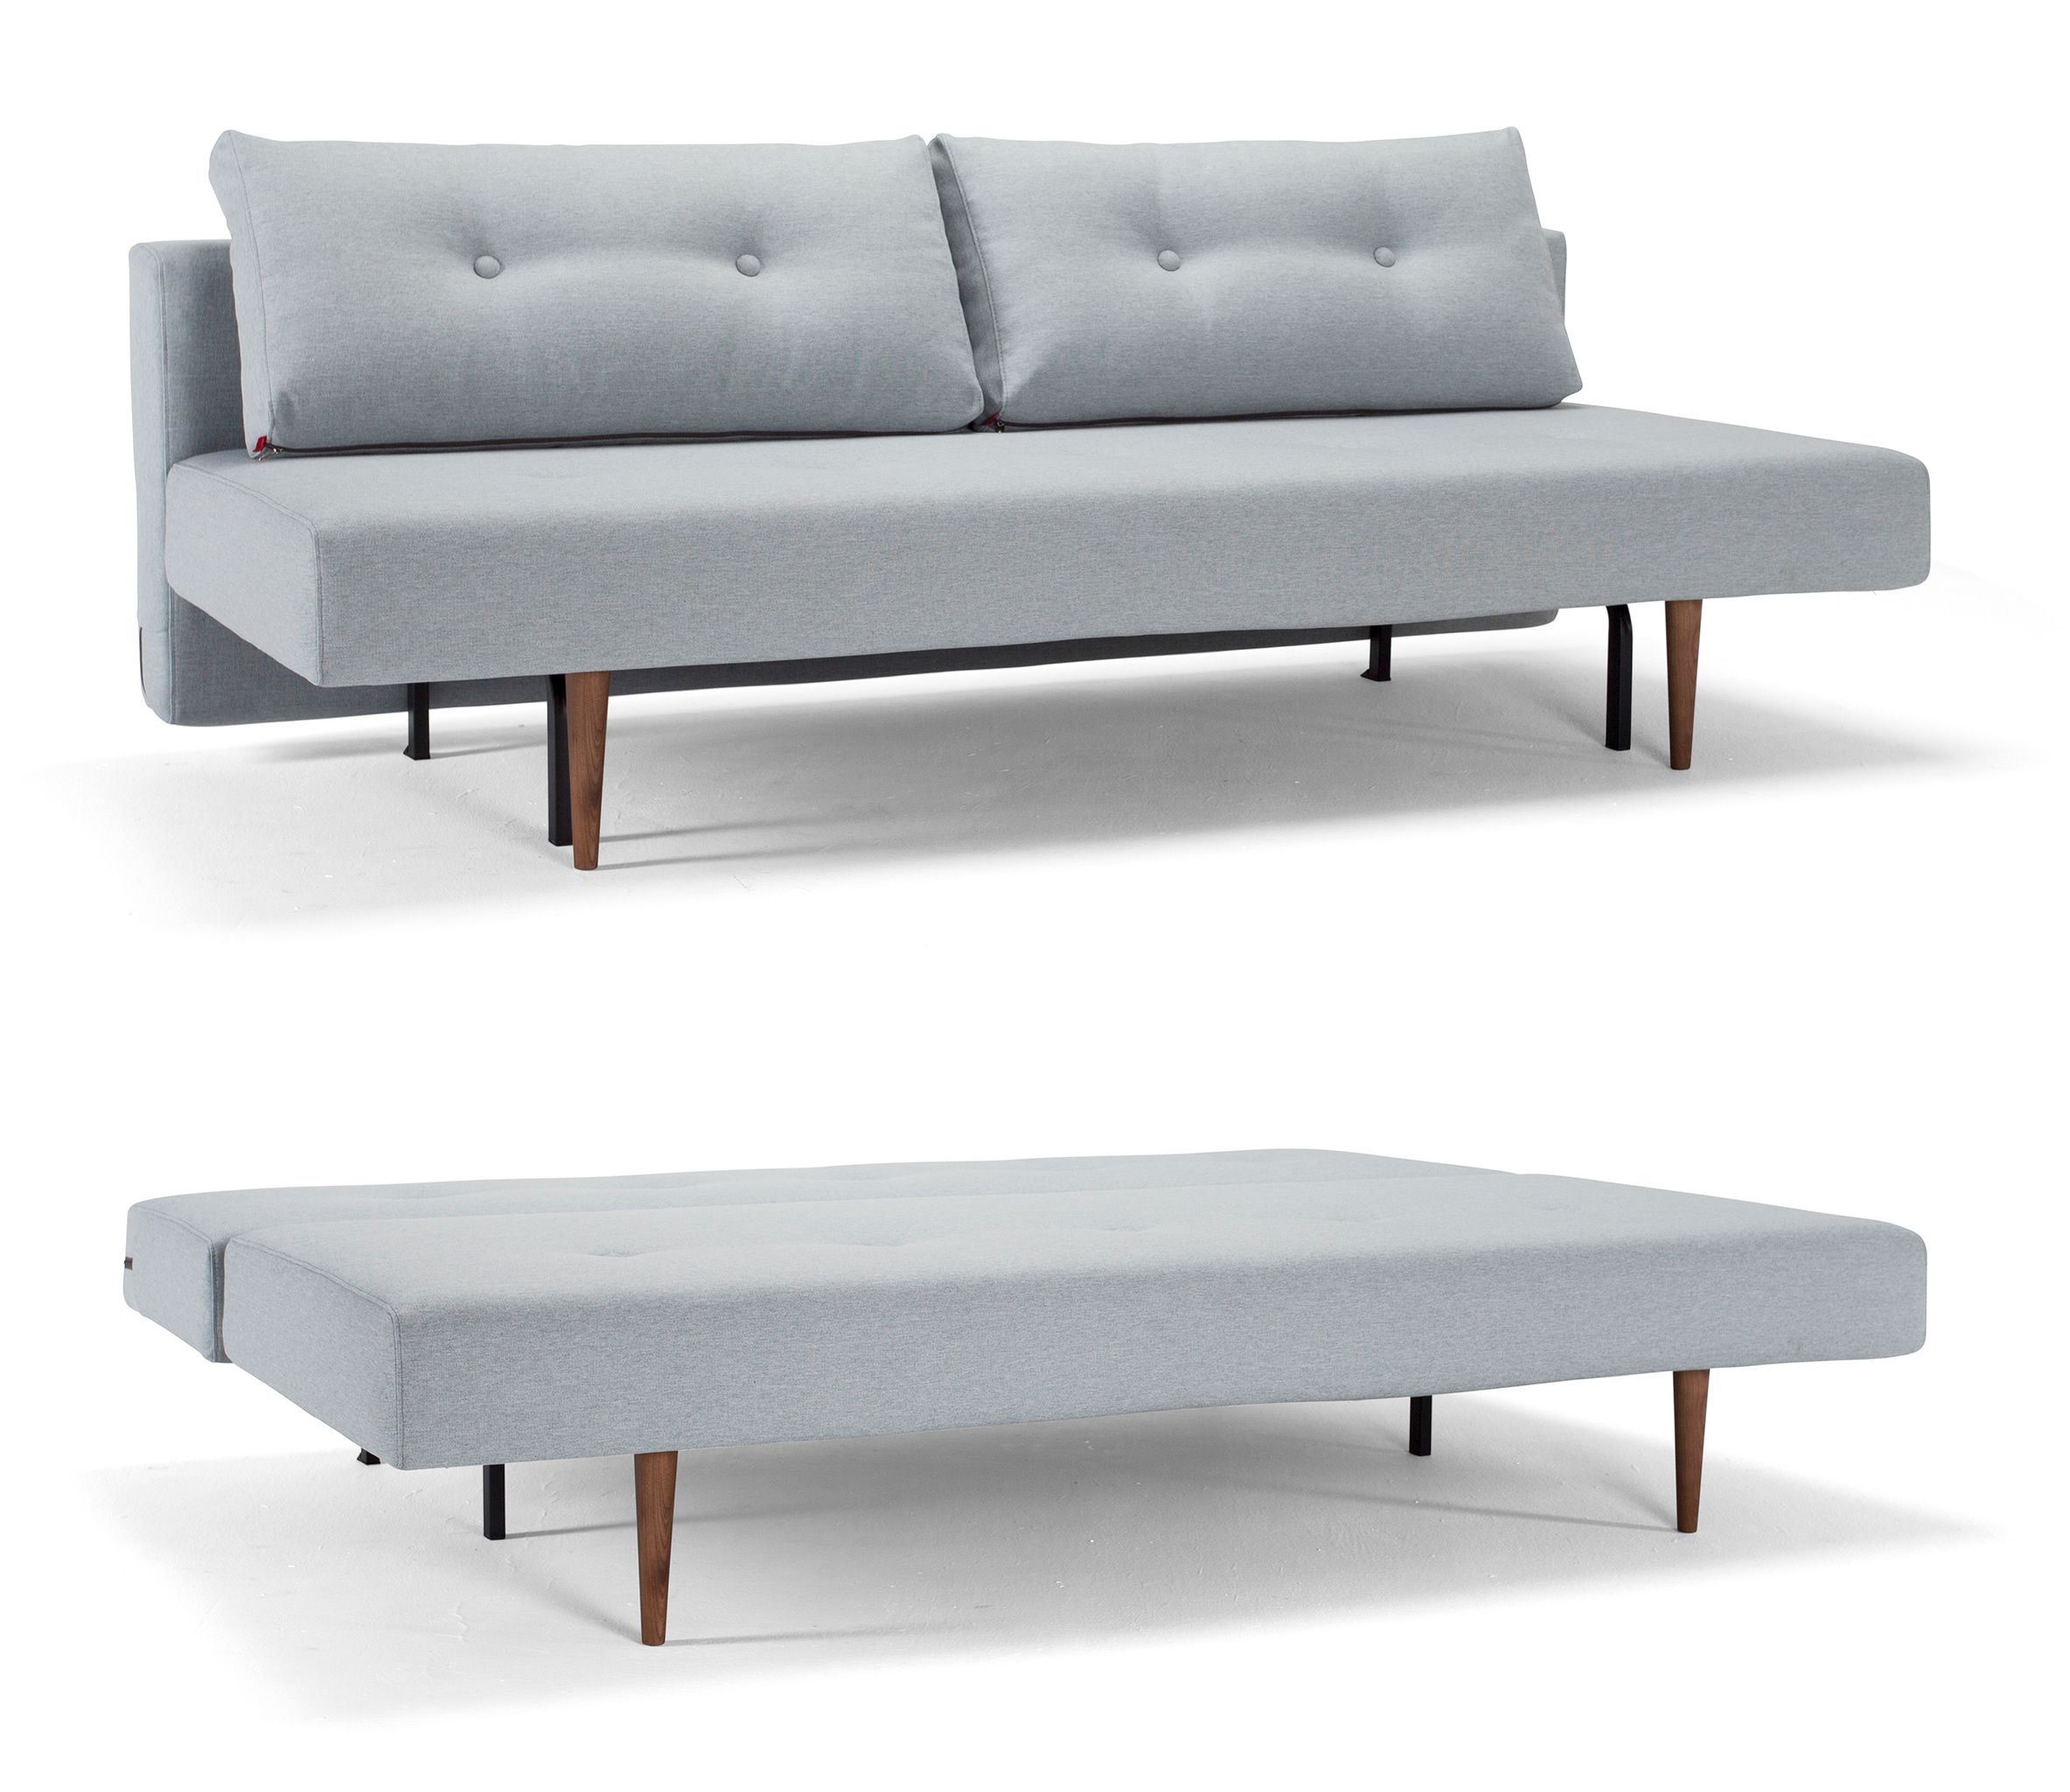 Seating and sleeping comfort, plus an elegant design that allows you ...